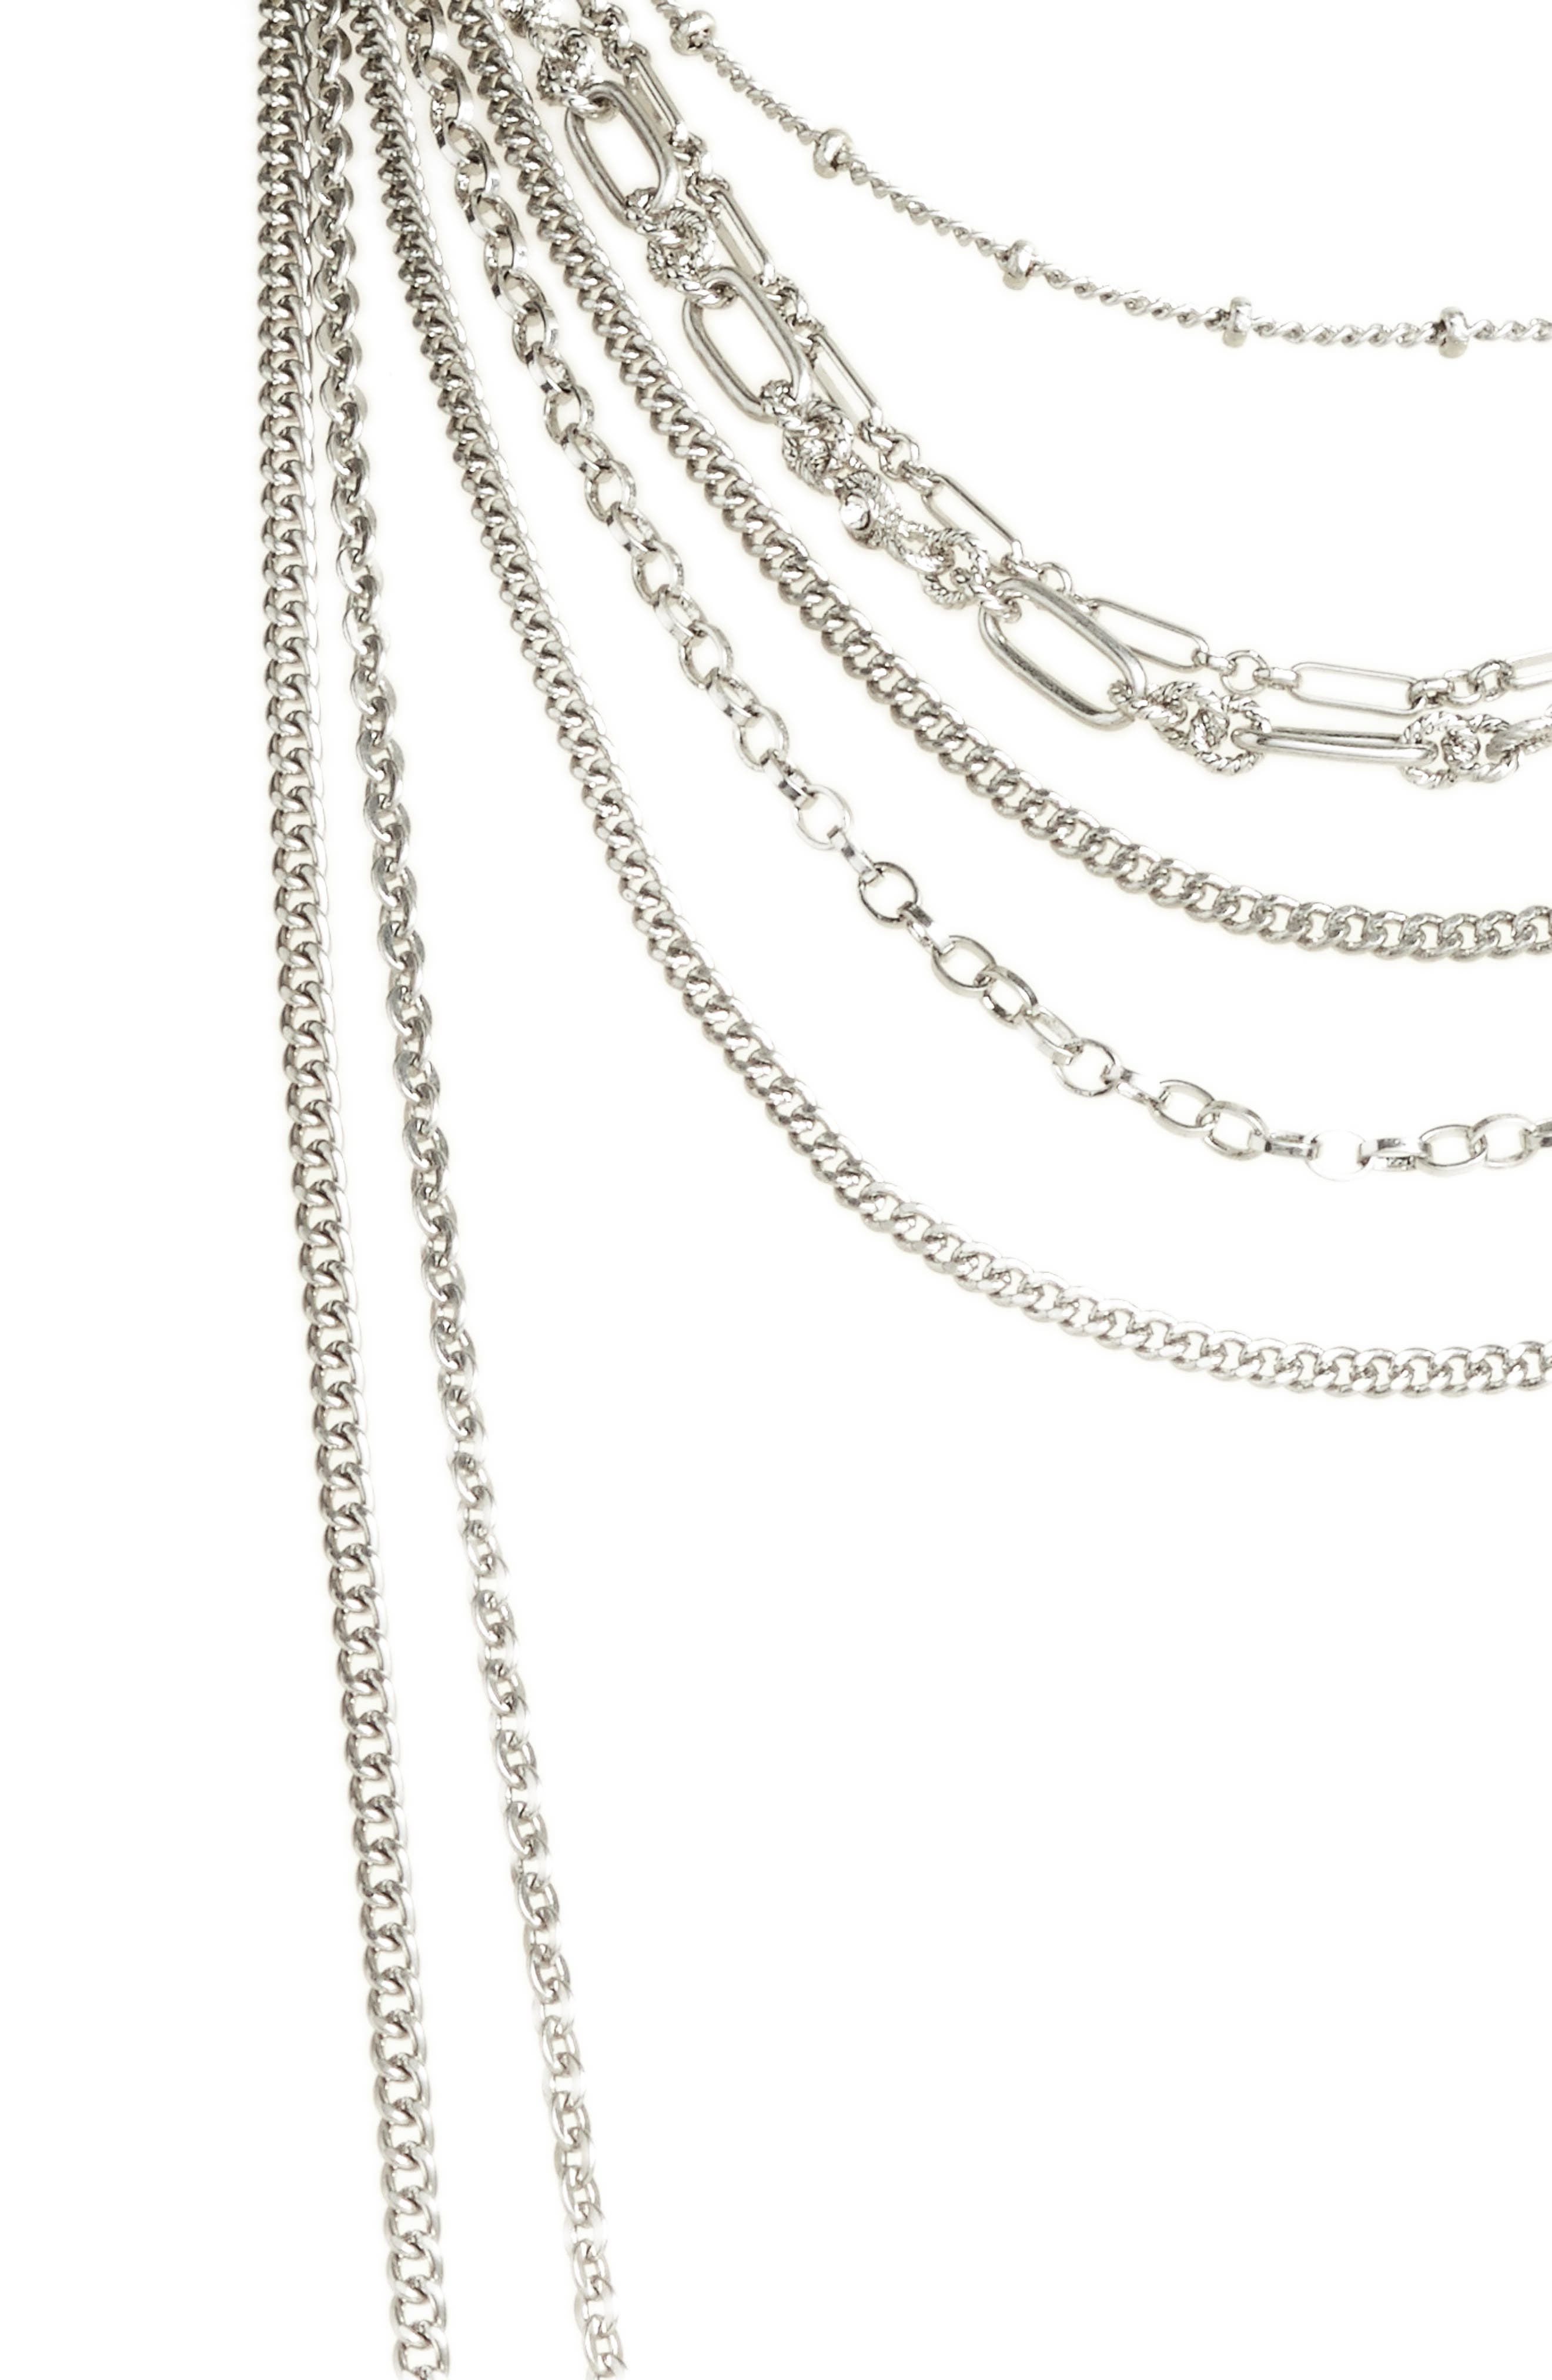 Multistrand Textured Chain Necklace,                             Alternate thumbnail 2, color,                             040